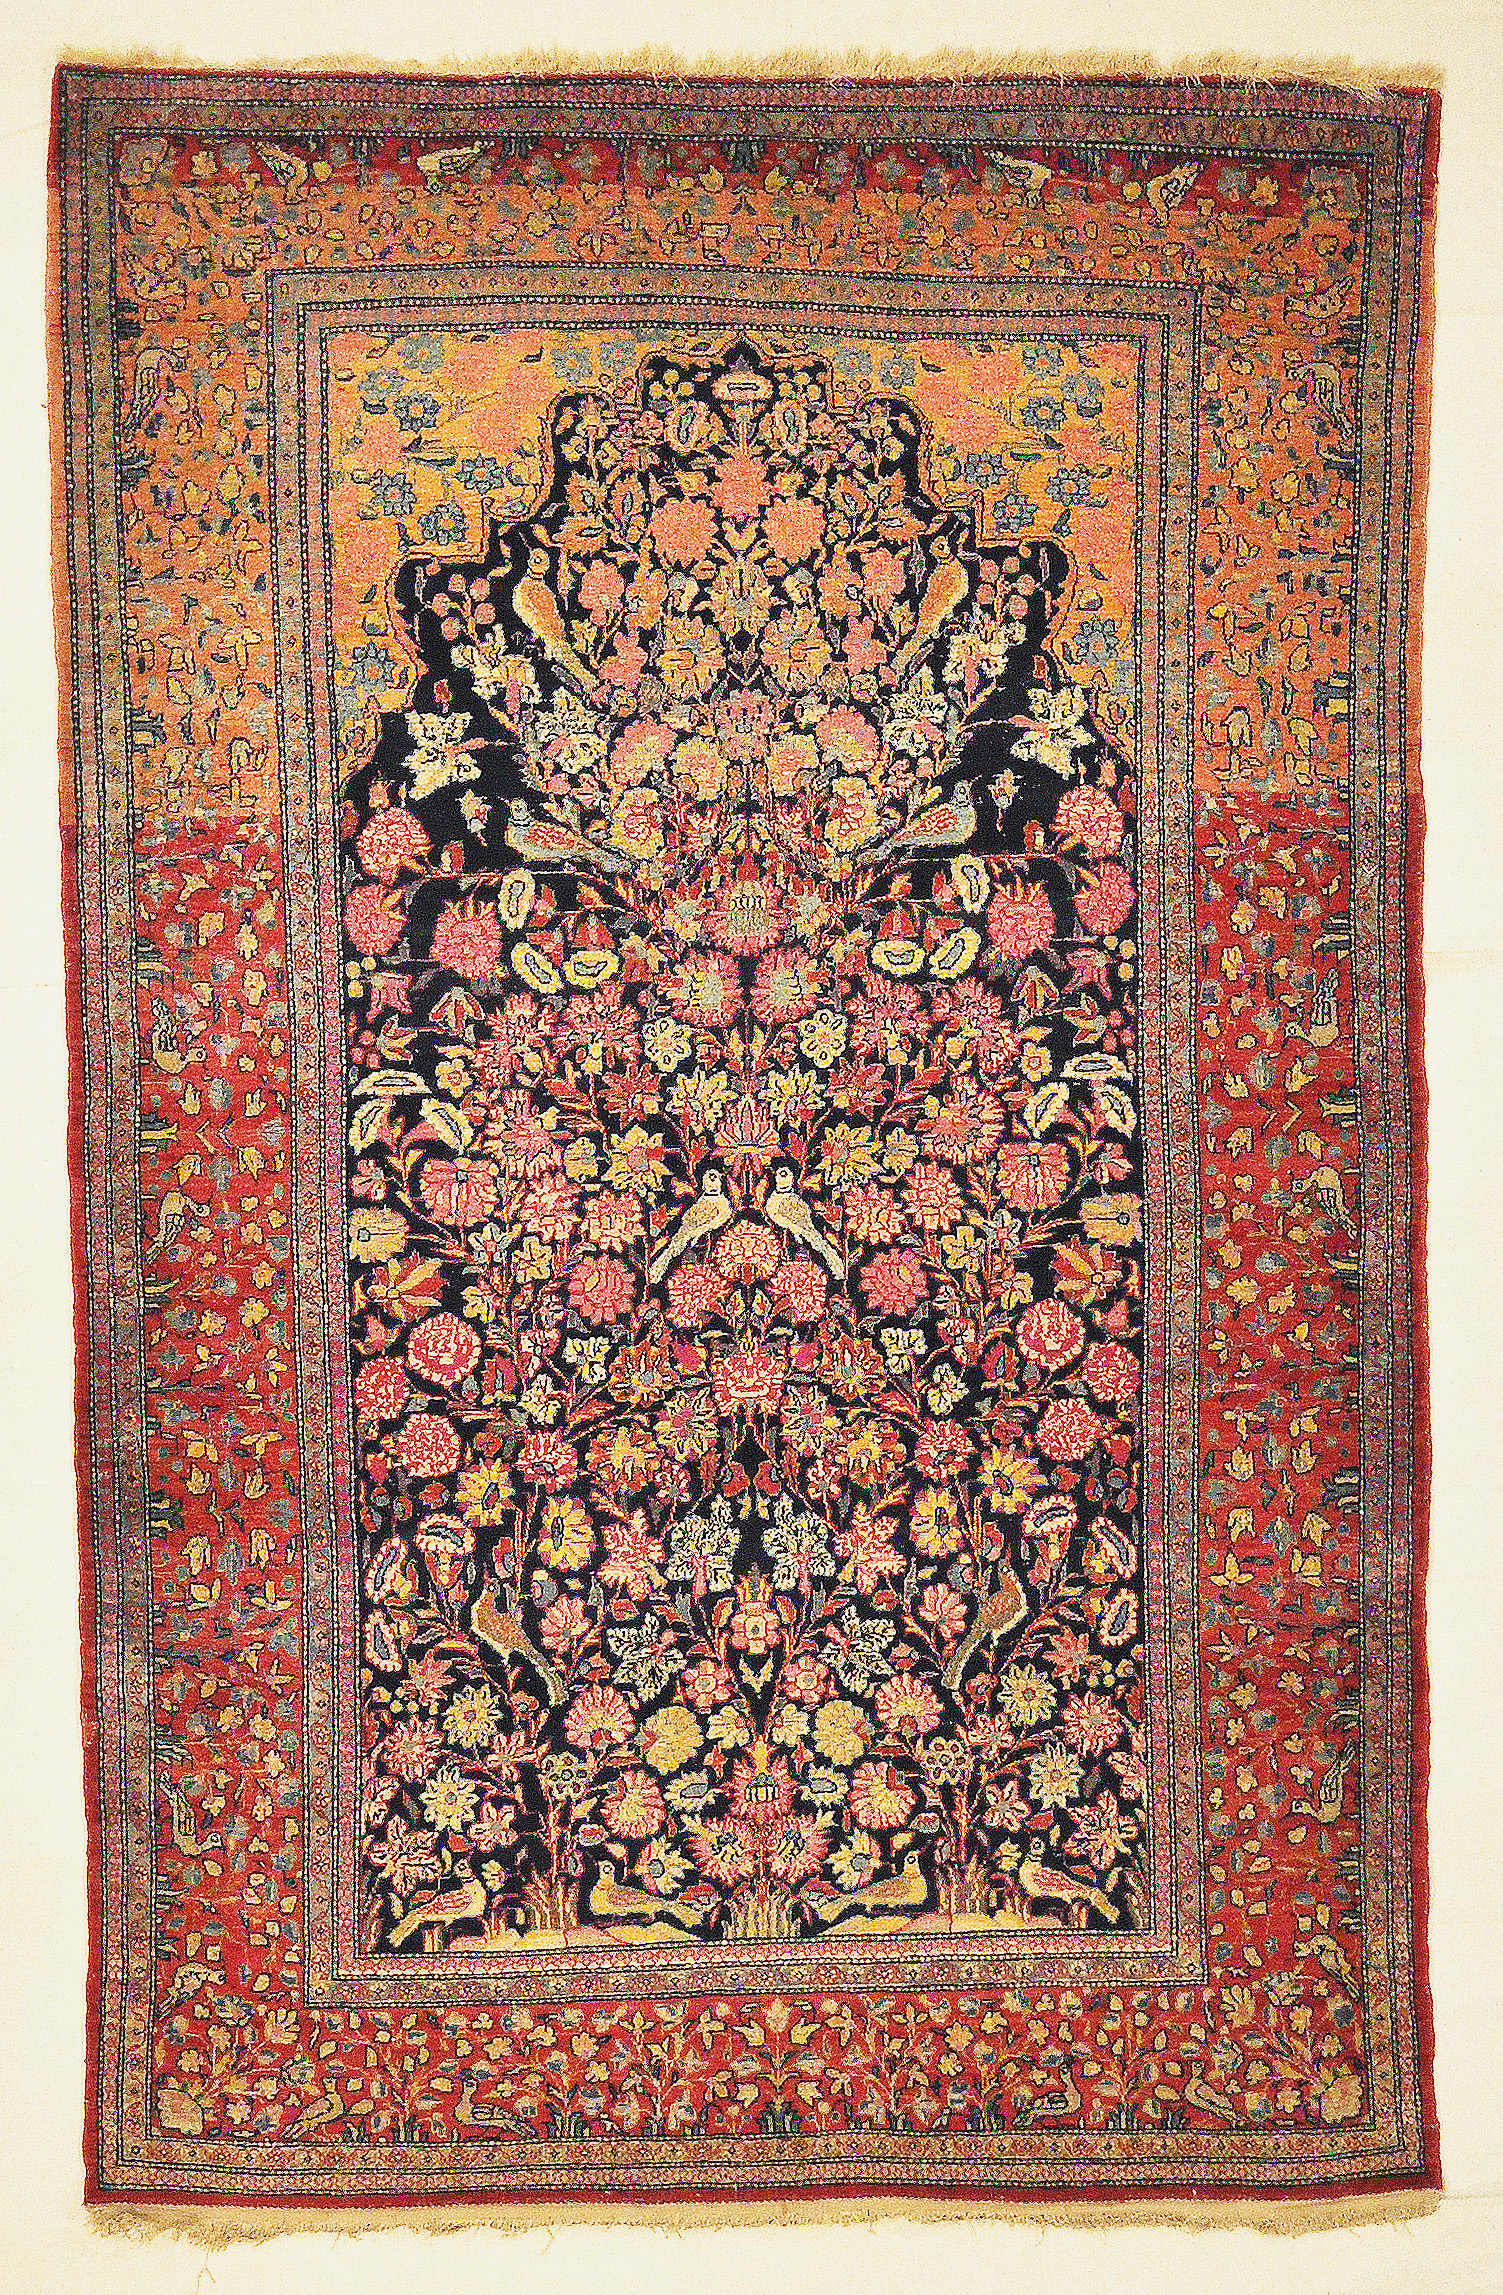 Antique Dabir Kashan Tree of Life Rug. The finest hand-knotted and natural dyed fibers. Tree of life. Rugs & More Santa Barbara Design Center